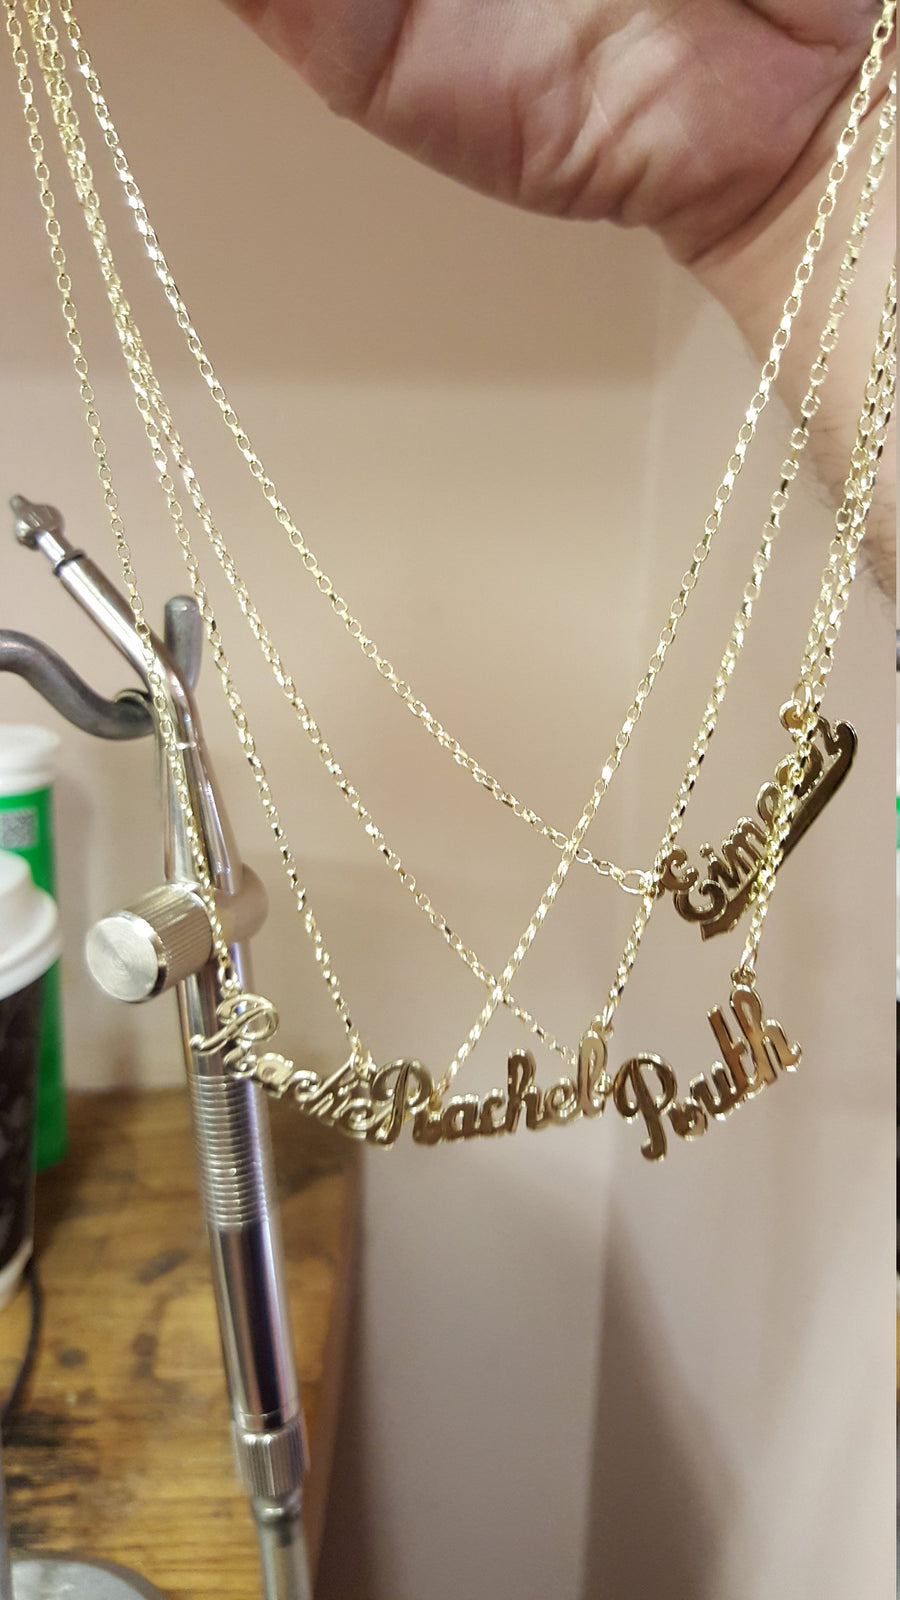 Name necklace in 9ct Gold on Chain